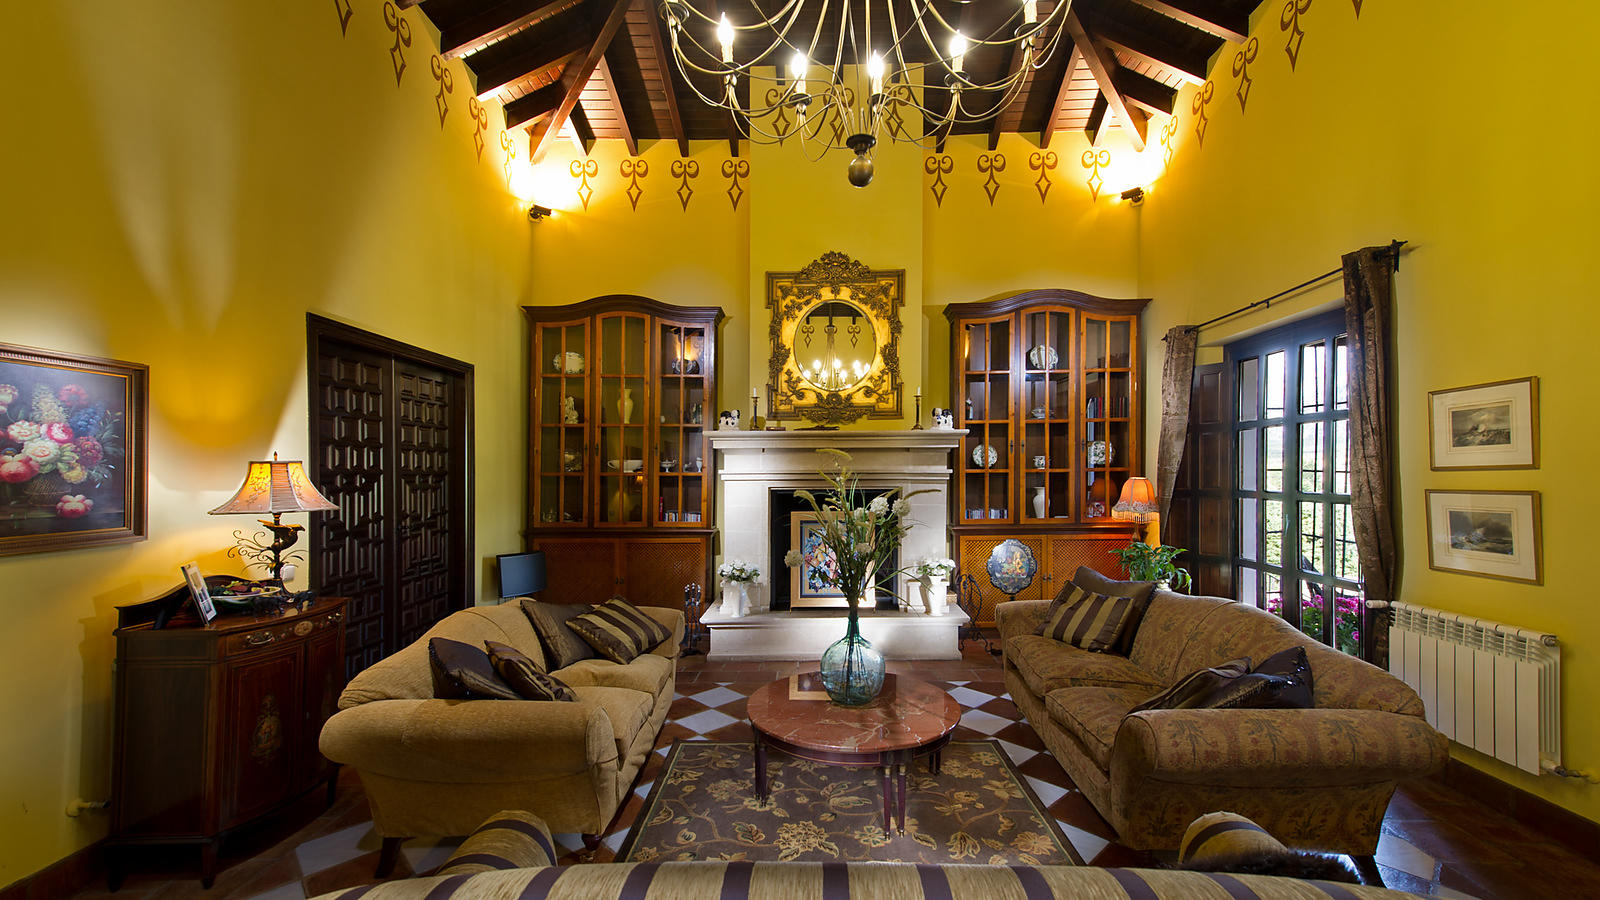 Luxury Villa Hotel Lounge Interior in Andalucia, Spain